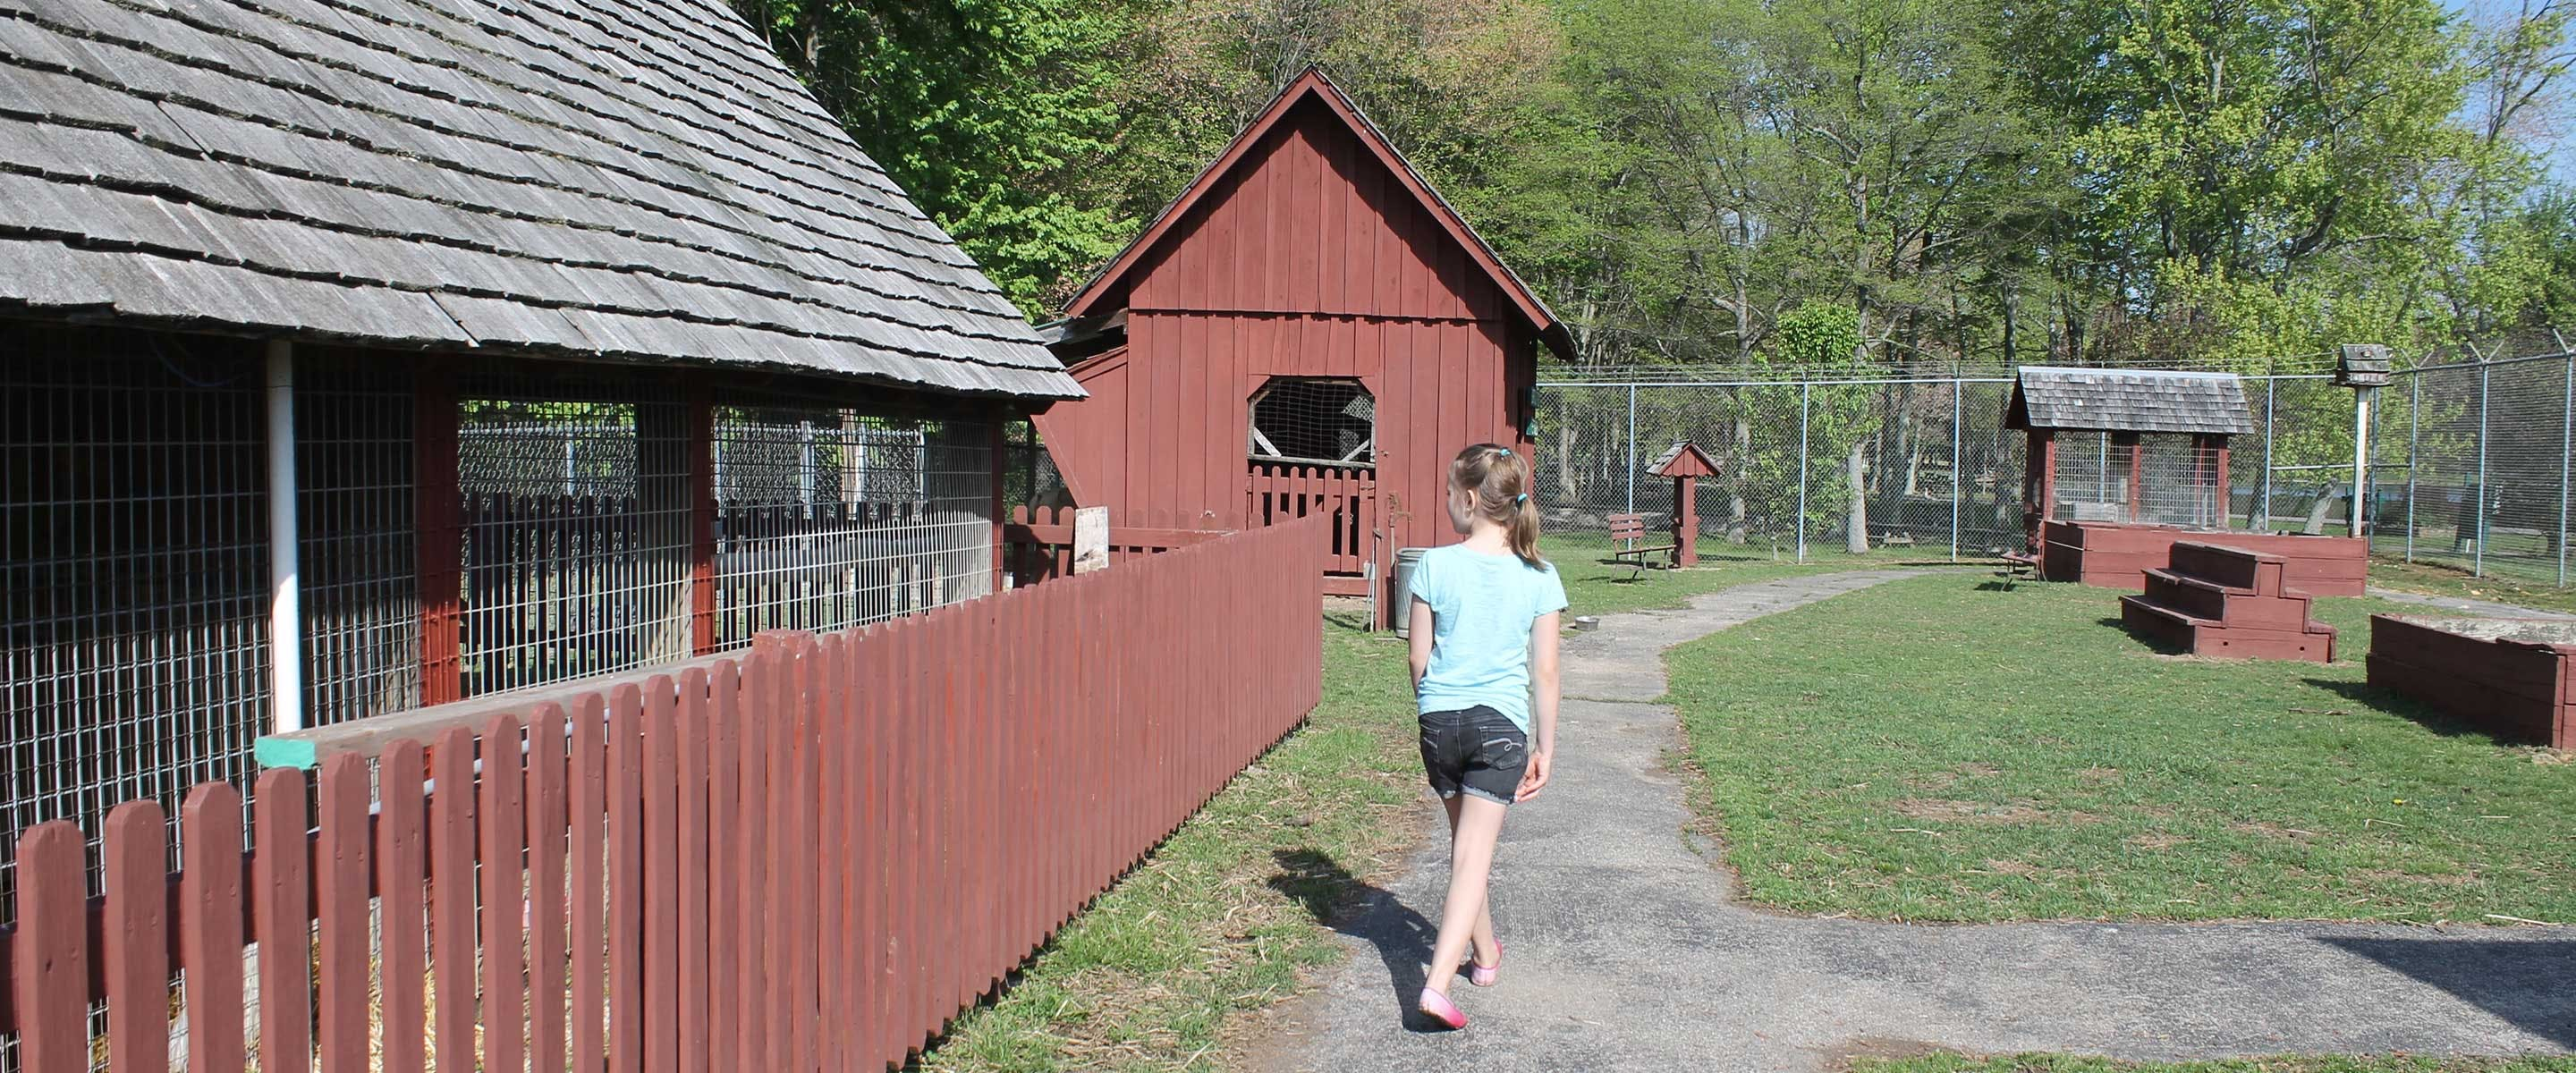 girl walking the petting zoo area